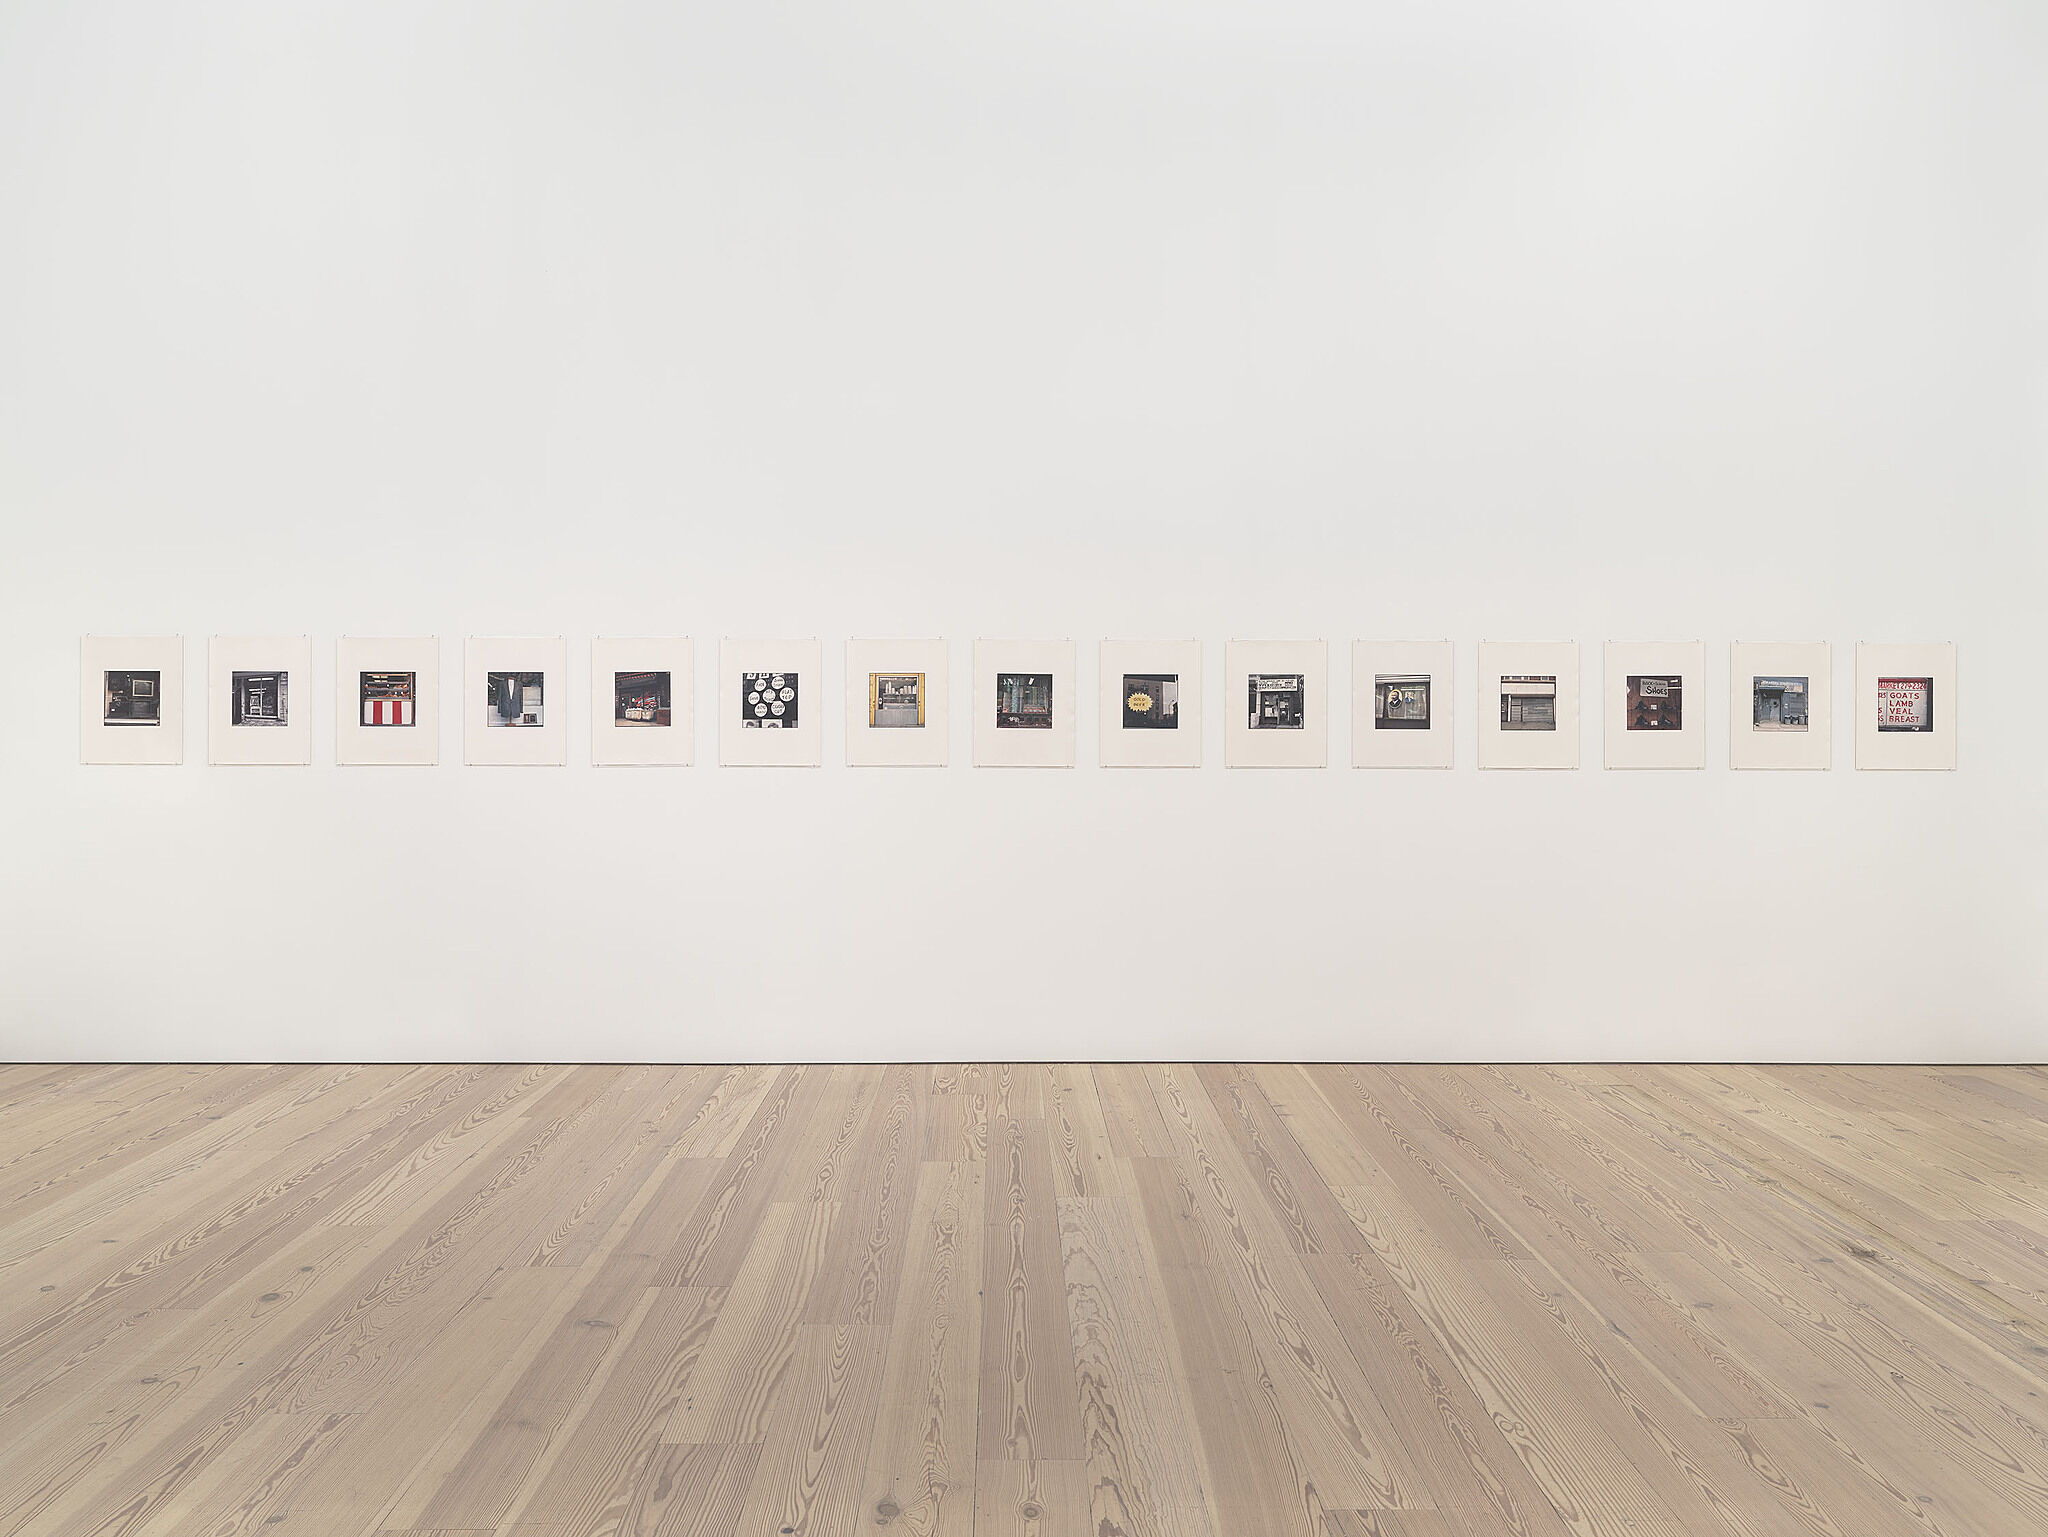 A photo of the Whitney galleries with a row of photos on the wall.